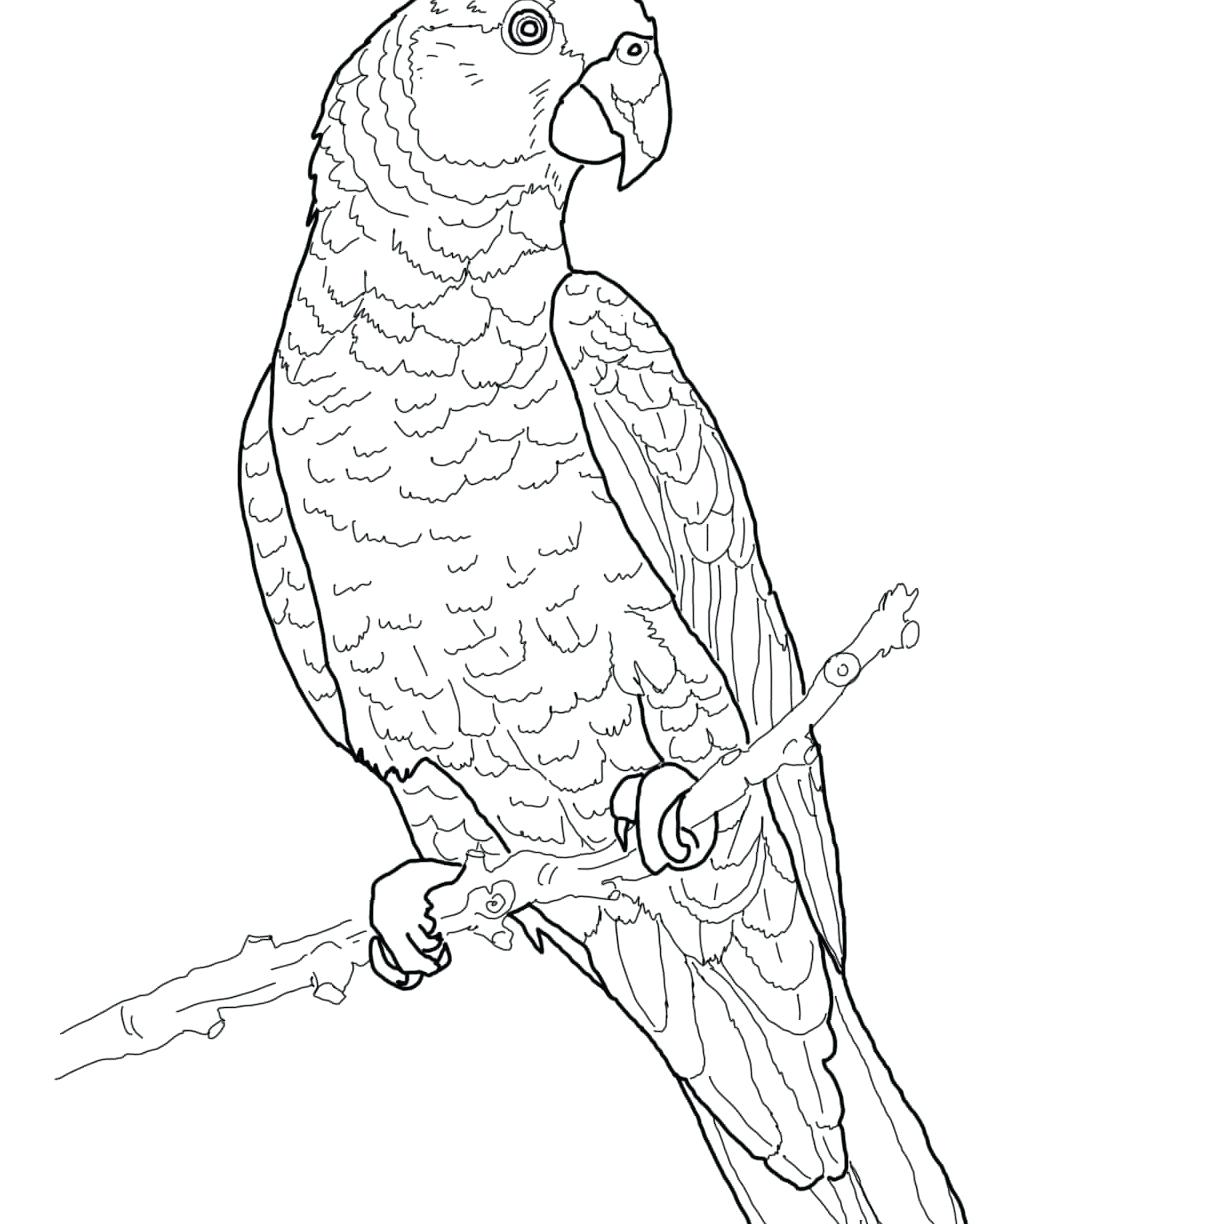 Green Parrot Drawing at GetDrawings.com   Free for personal use ...